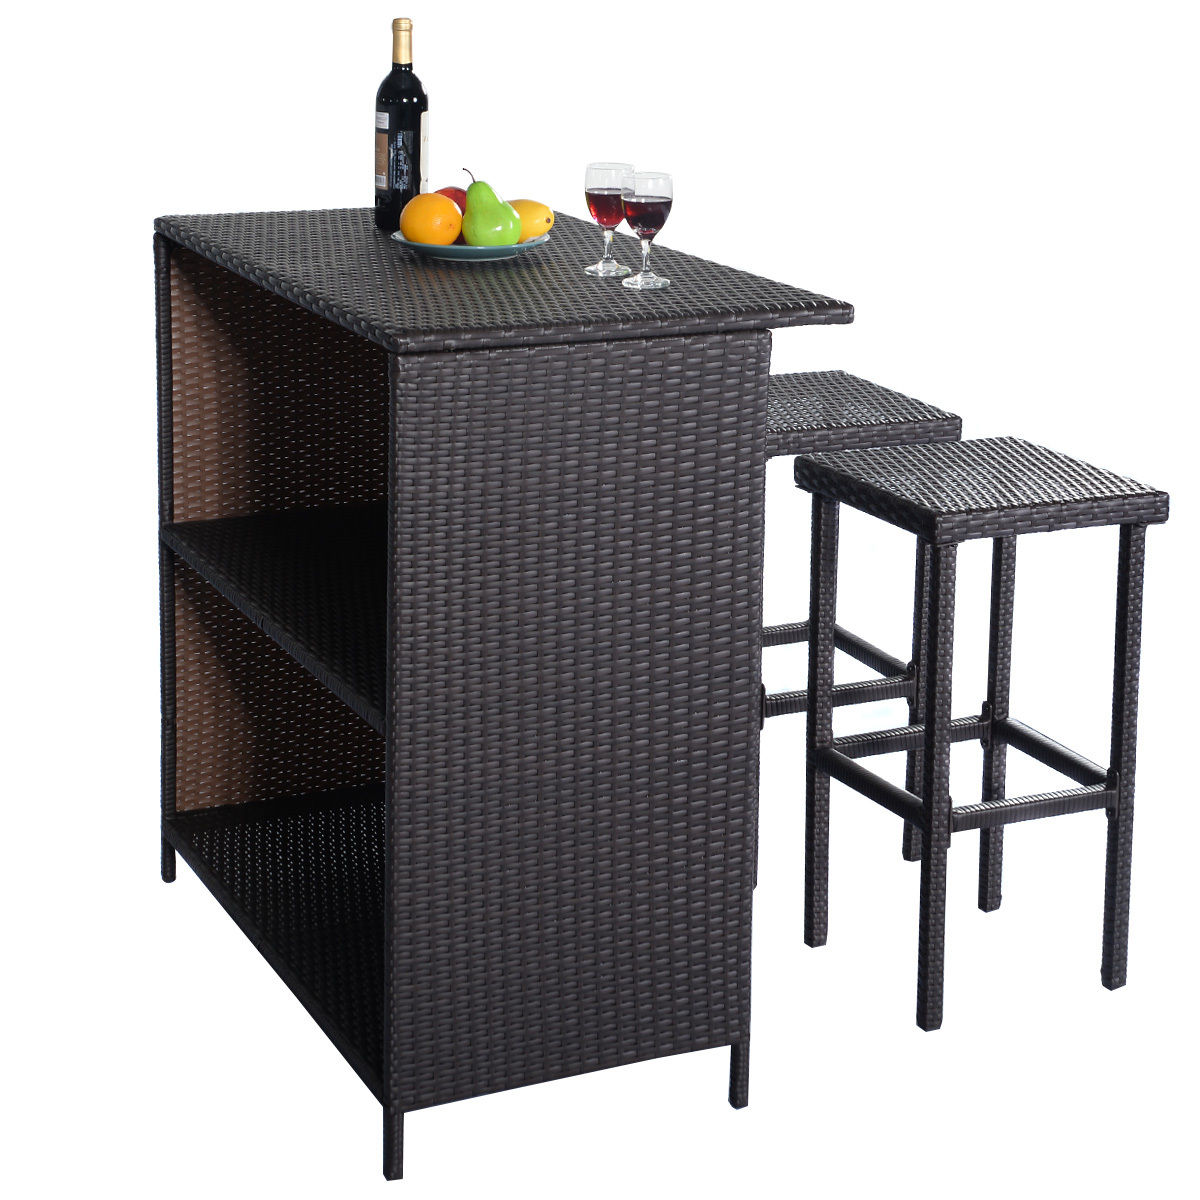 rattan wicker bar bbq dining set table and 2 stools patio. Black Bedroom Furniture Sets. Home Design Ideas